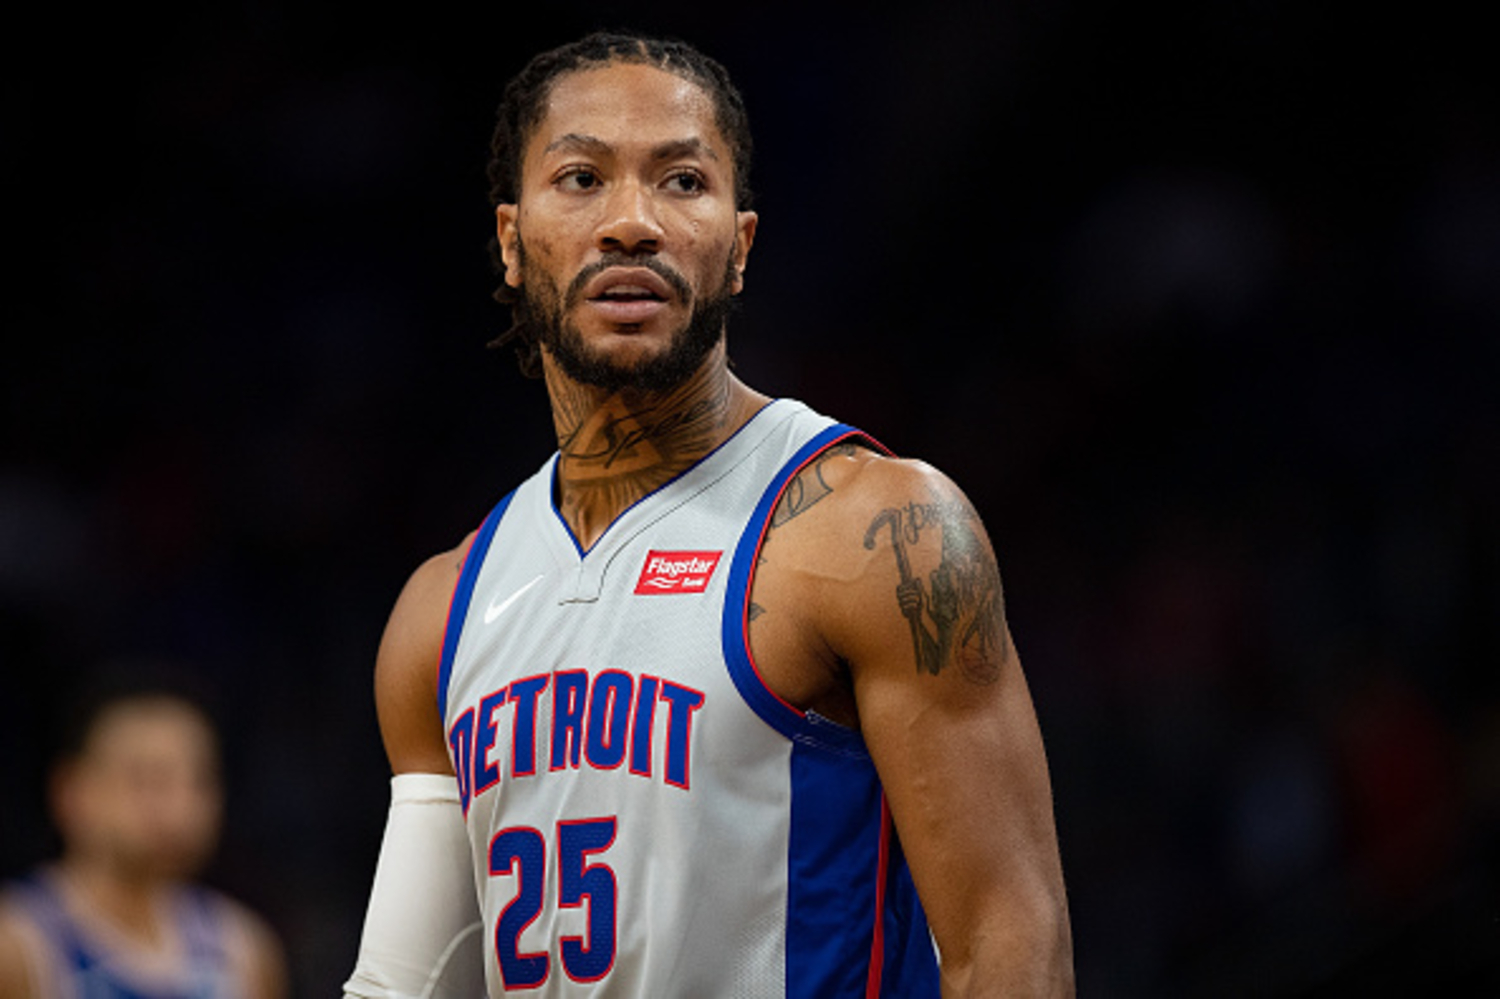 Derrick Rose offering guidance to younger players